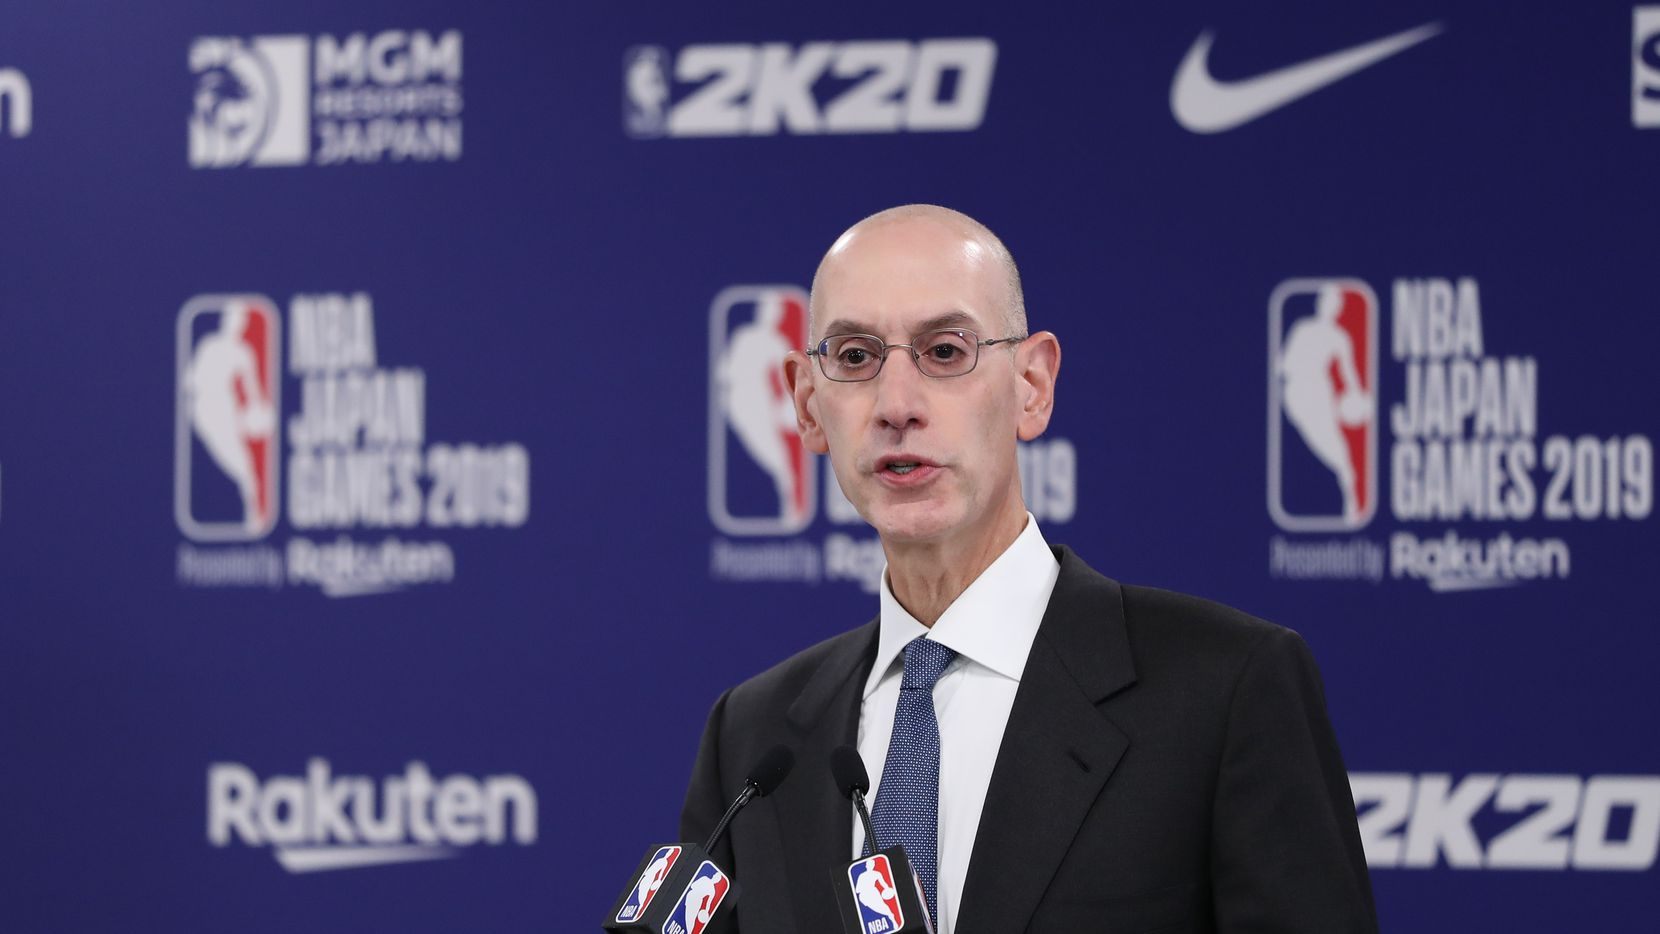 Commissioner of the National Basketball Association (NBA) Adam Silver speaks during a press conference prior to the preseason game between Houston Rockets and Toronto Raptors at Saitama Super Arena on October 08, 2019 in Saitama, Japan. (Takashi Aoyama/Getty Images/TNS)